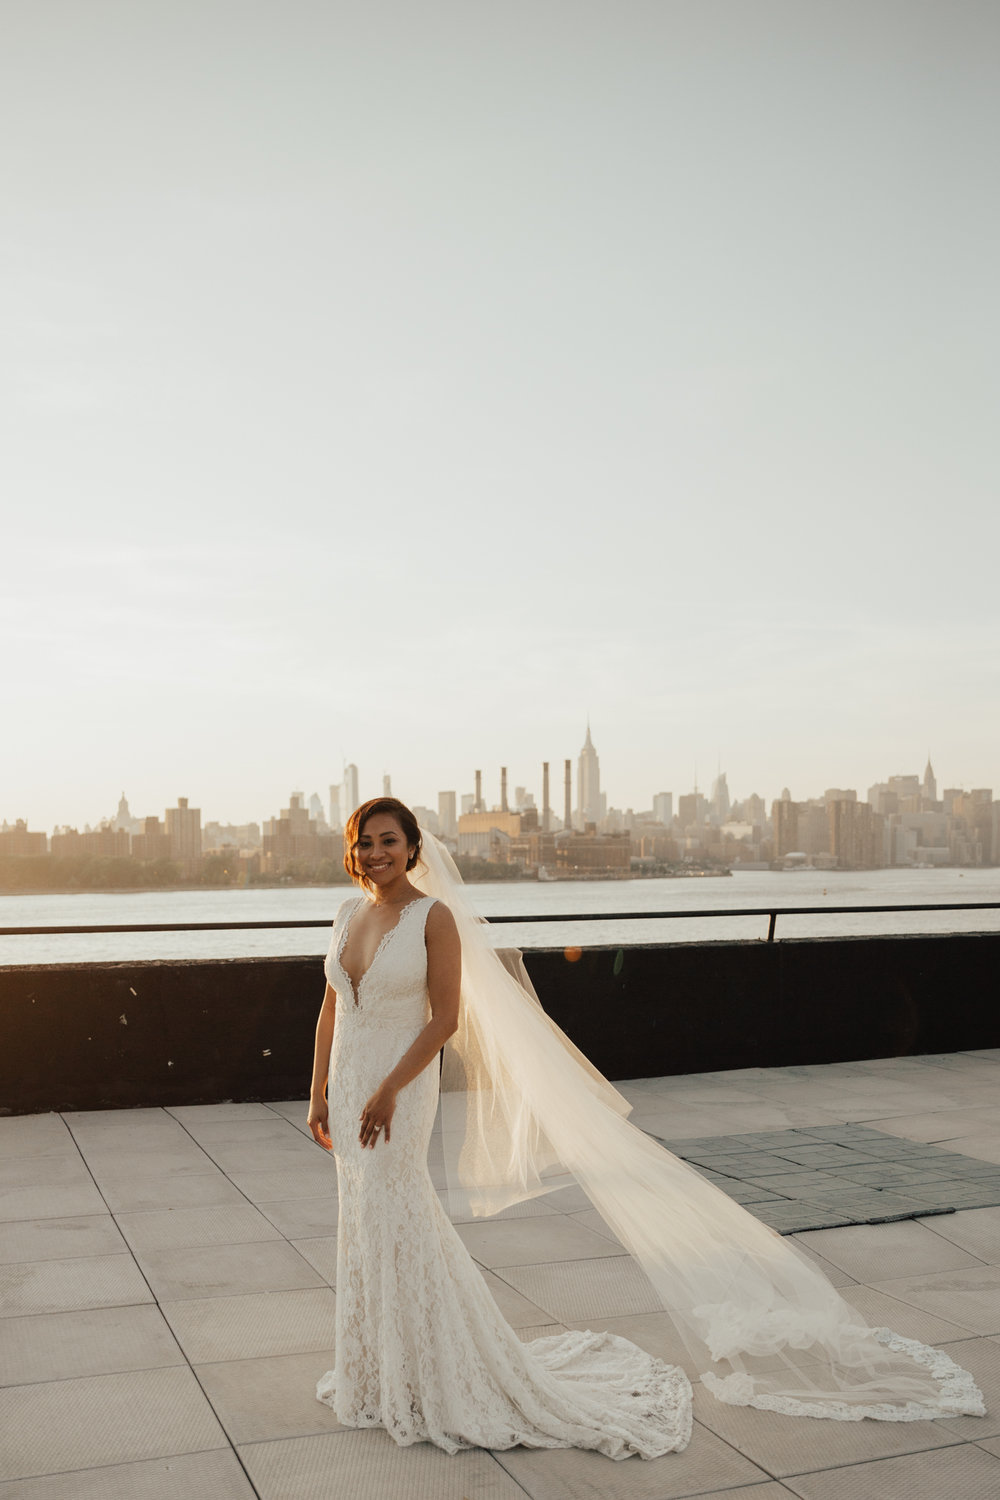 Fine art NYC wedding photography